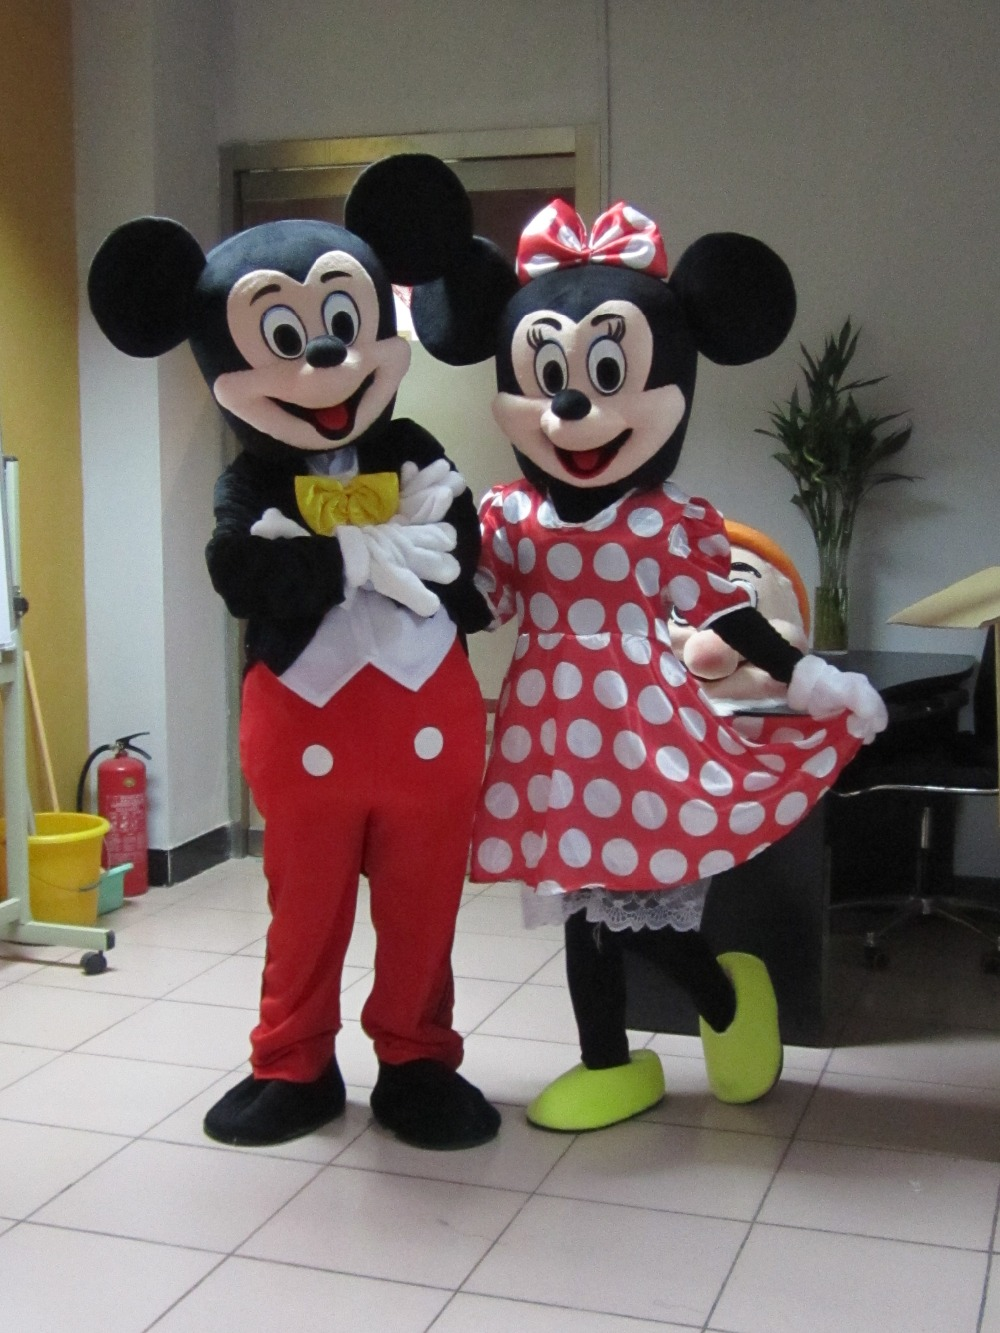 BING RUI CO  High Quality Minnie Mascot Costume Skirt. Shoes. Gloves Minions Mascot Costume Gloves, Shoes, Free Shipping